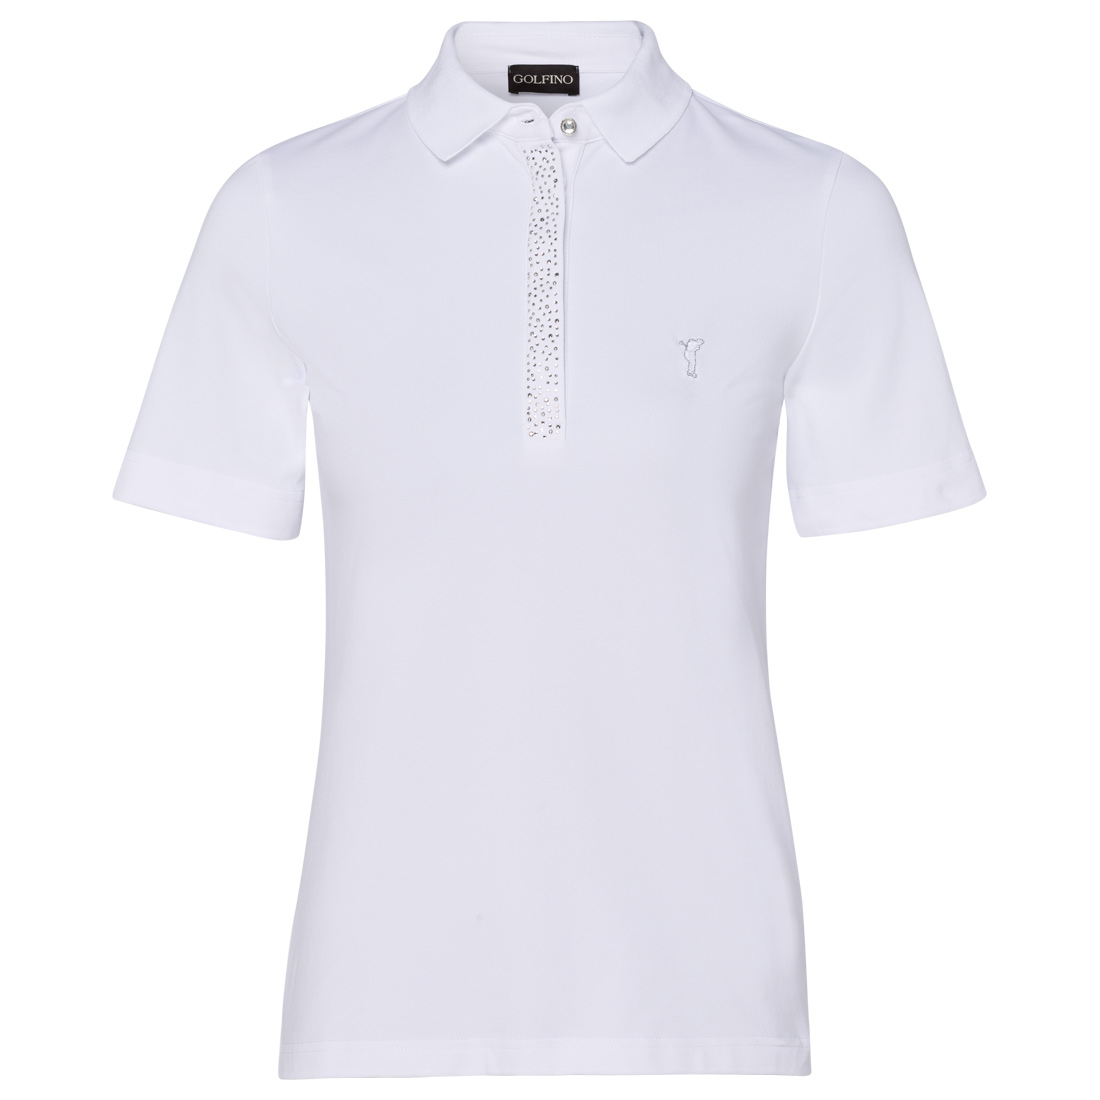 Ladies' polo with gemstones and sun protection function